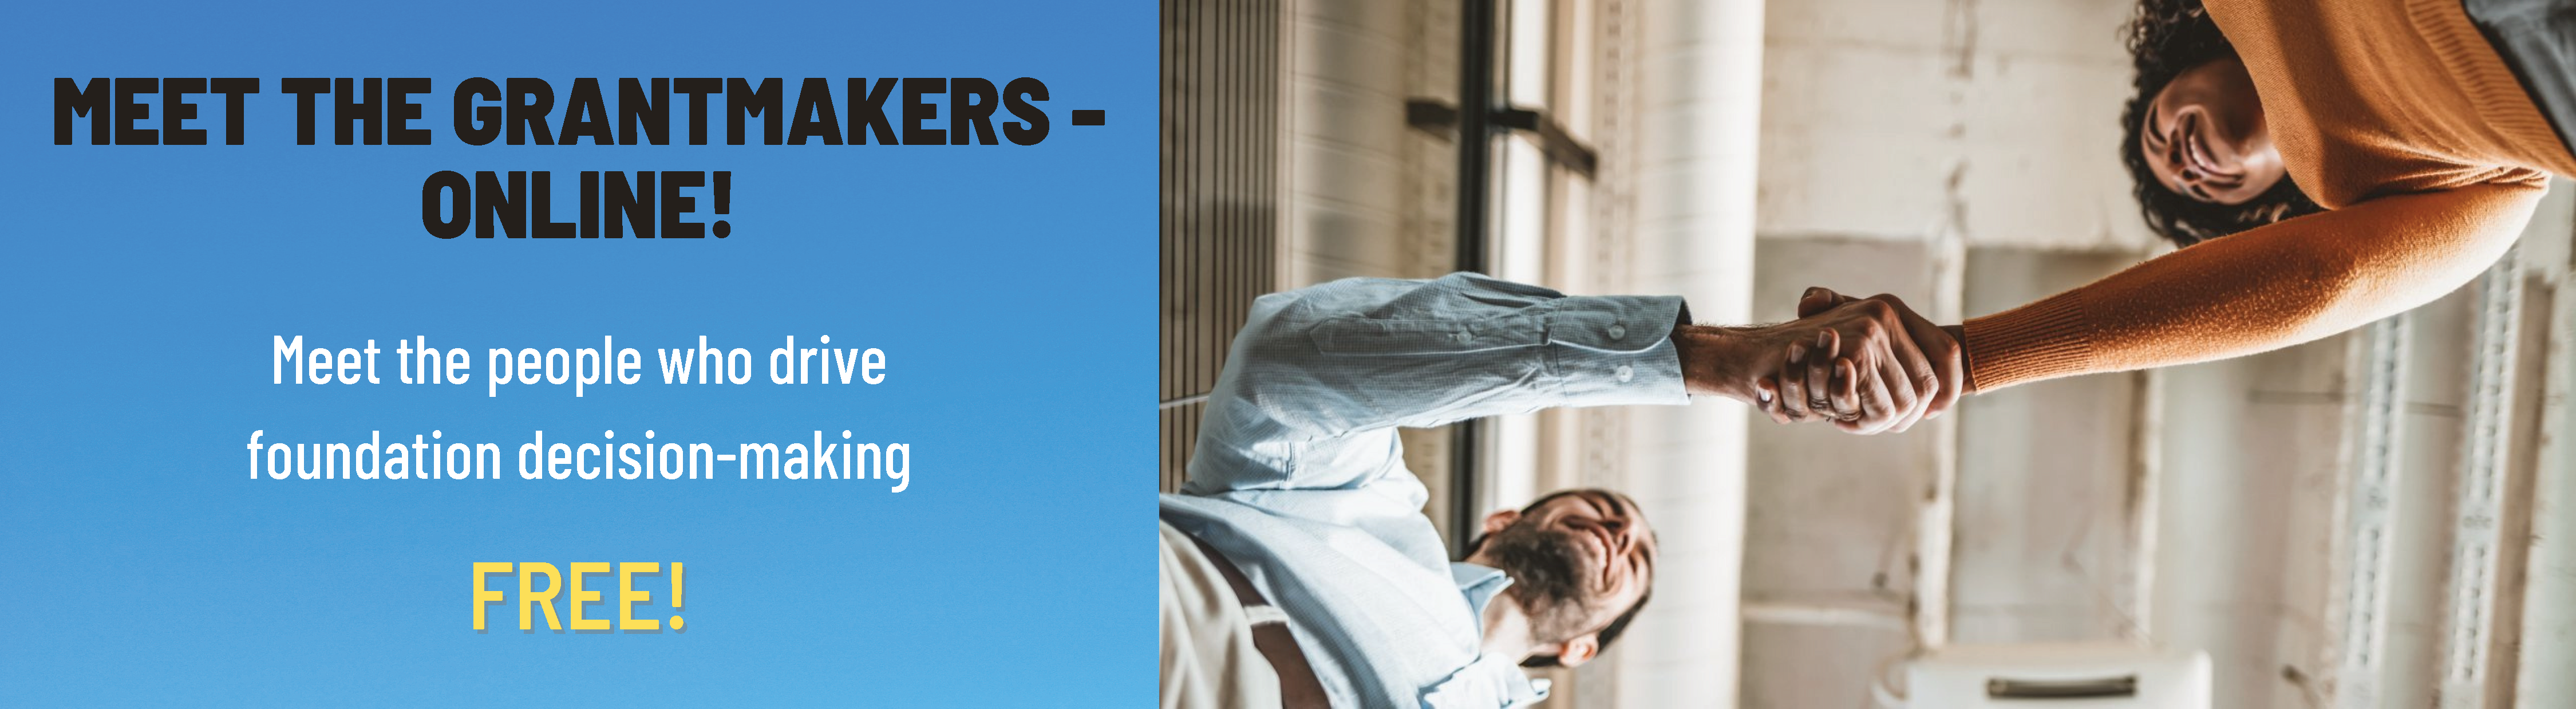 Meet the Grantmakers - Online. Meet the people who drive foundation decision-making. Free!